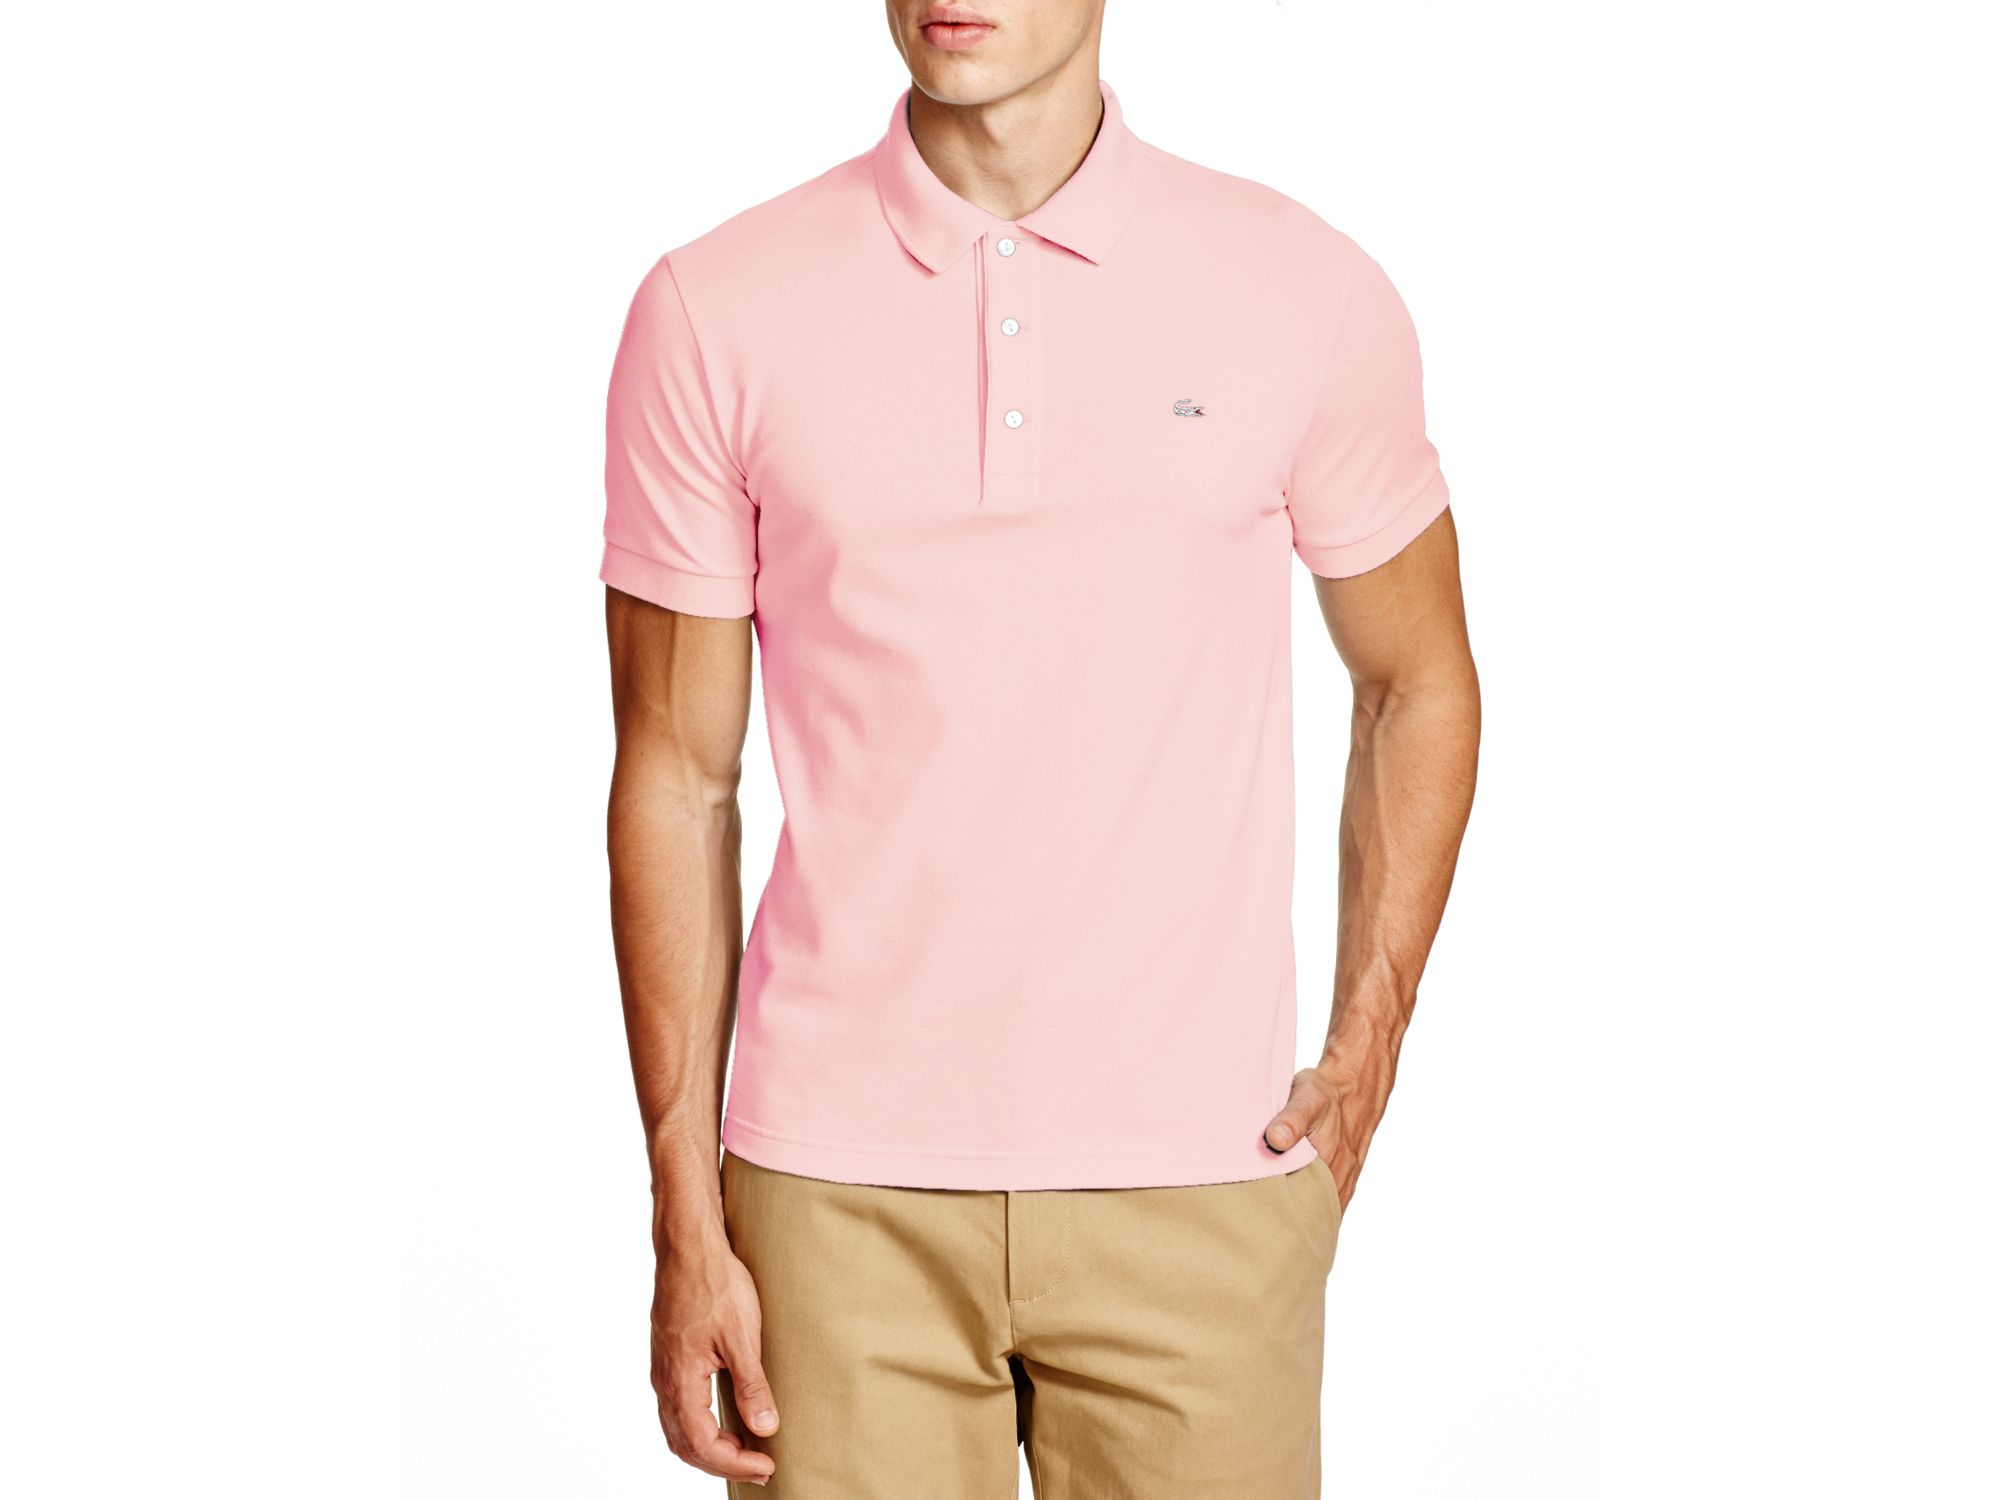 59cc36ec1 Lyst - Lacoste Stretch Slim Fit Polo in Pink for Men